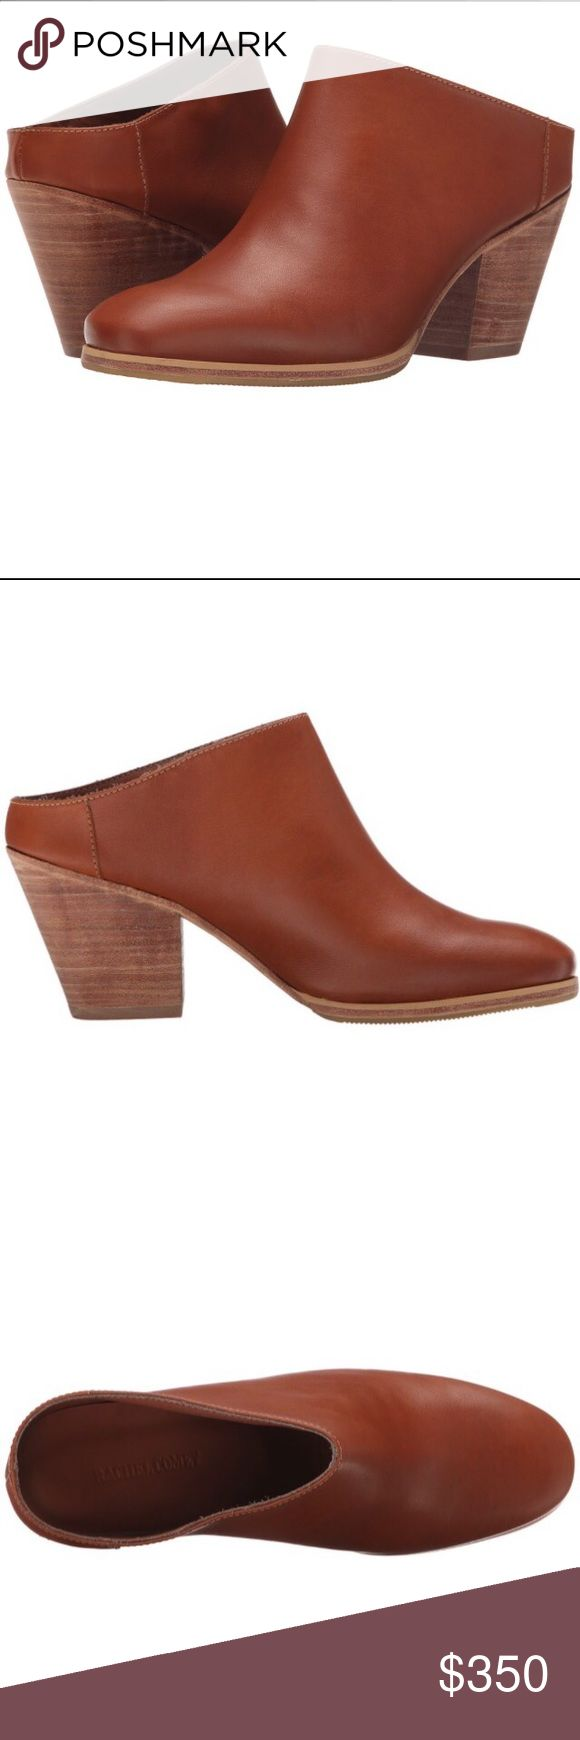 Rachel Comey Tan Leather Round Mule Shoes The most comfortable shoe and this leather is baby soft! Rachel Comey Shoes Ankle Boots & Booties